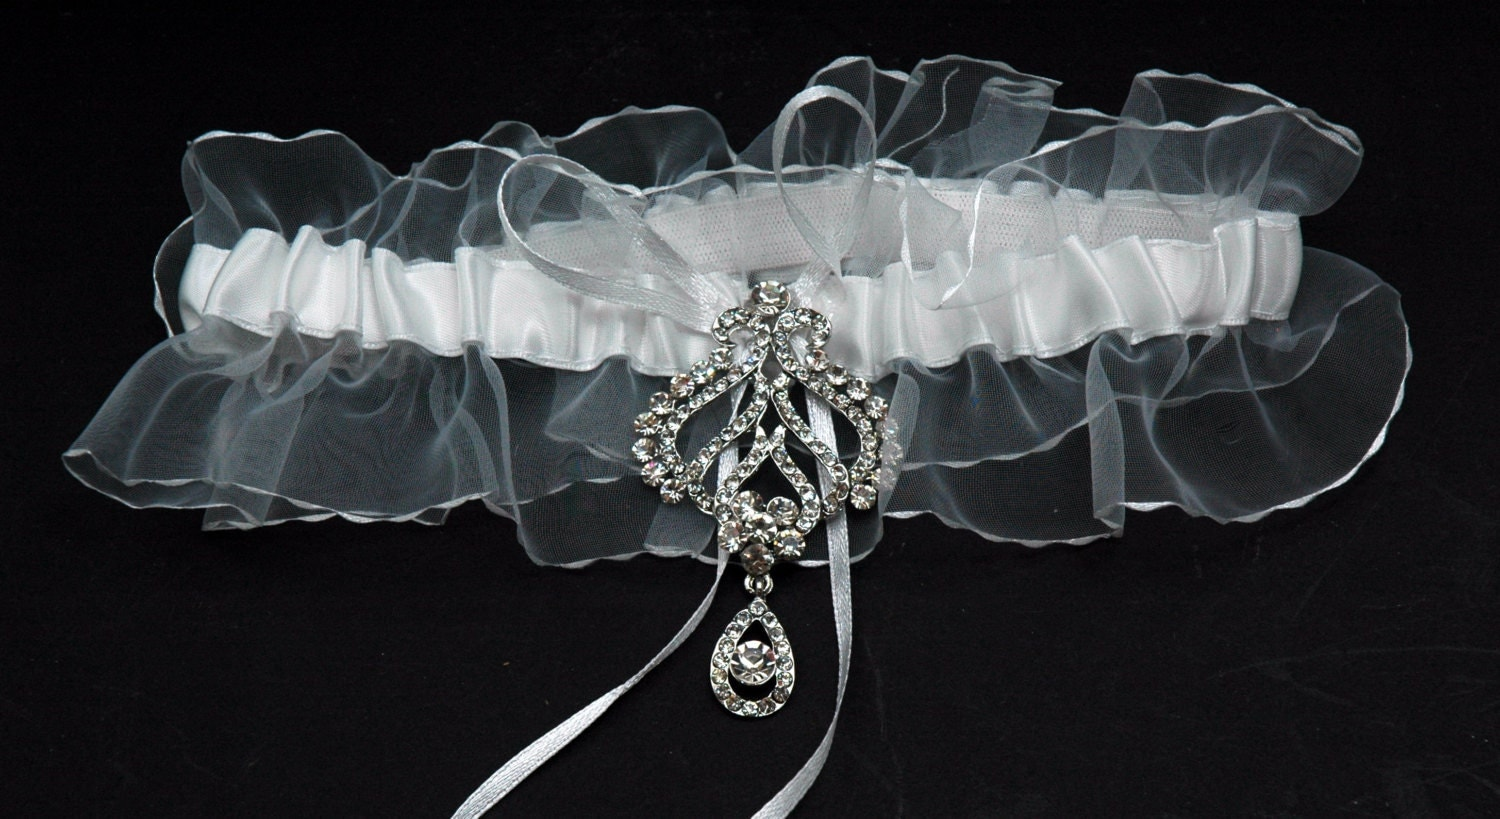 Wedding Garter Bridal Garter Belt White Lace Crystal Garter